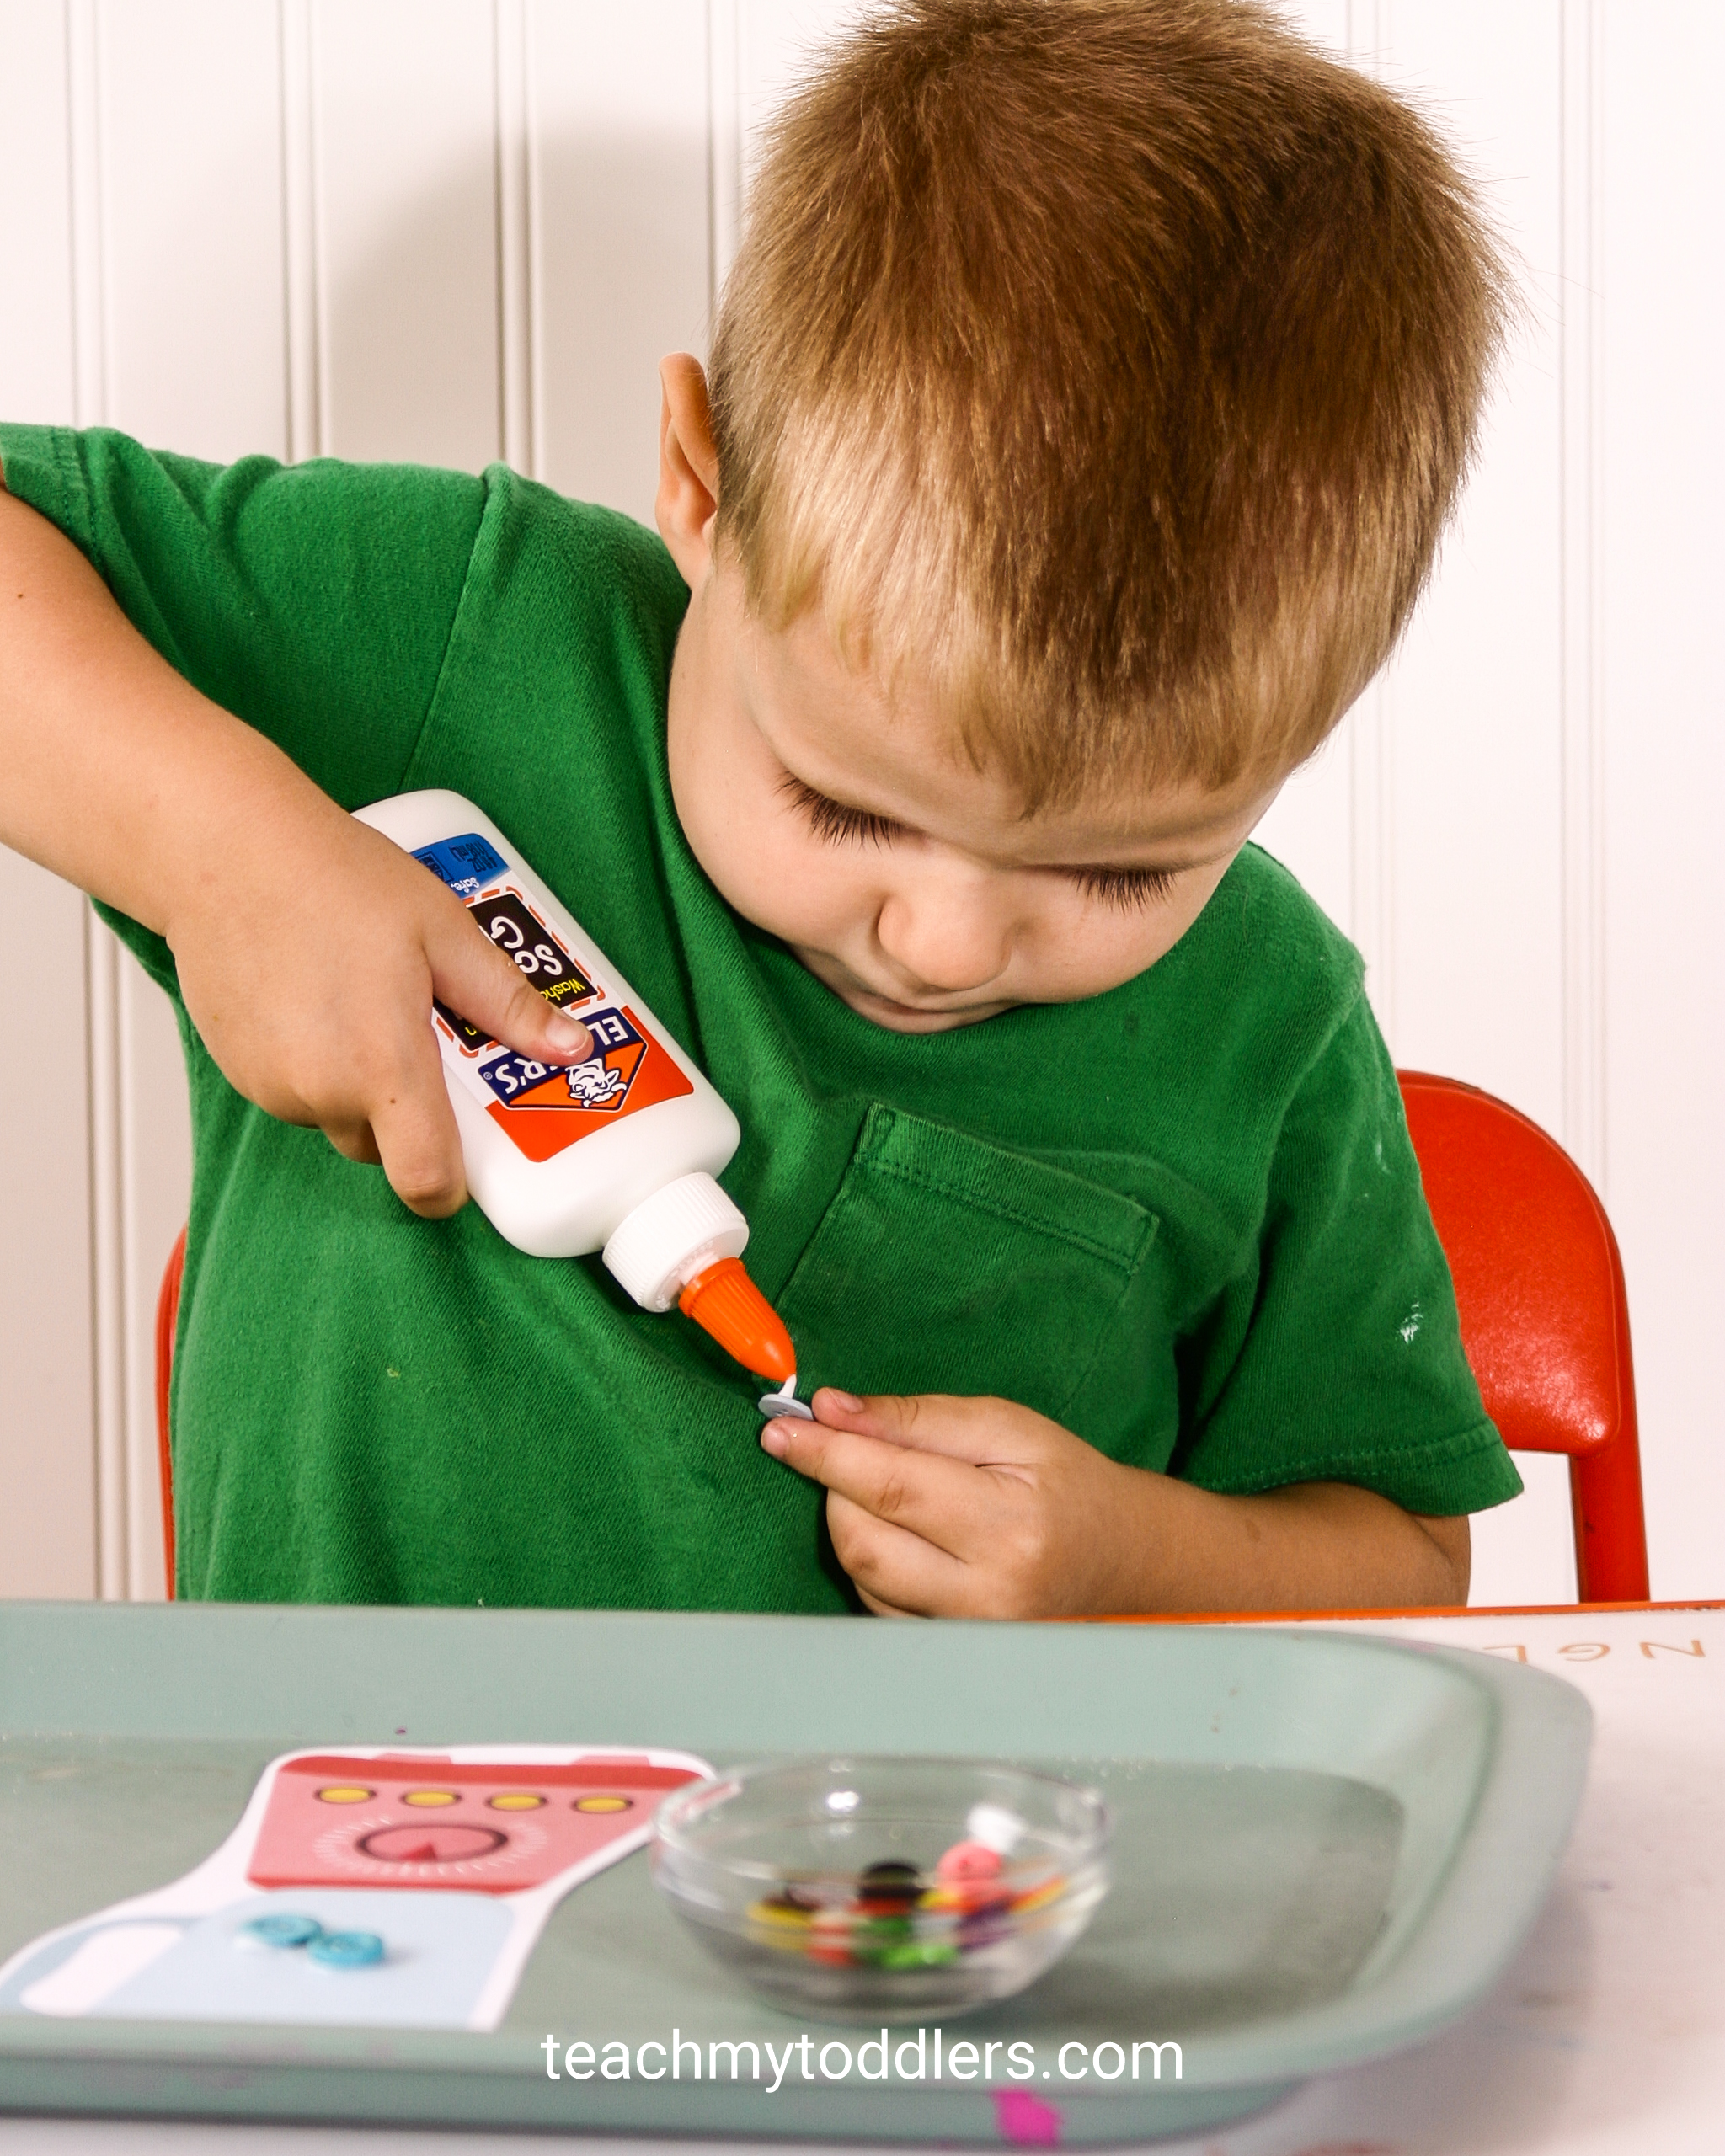 Use these great kitchen activities to teach toddler the letter k